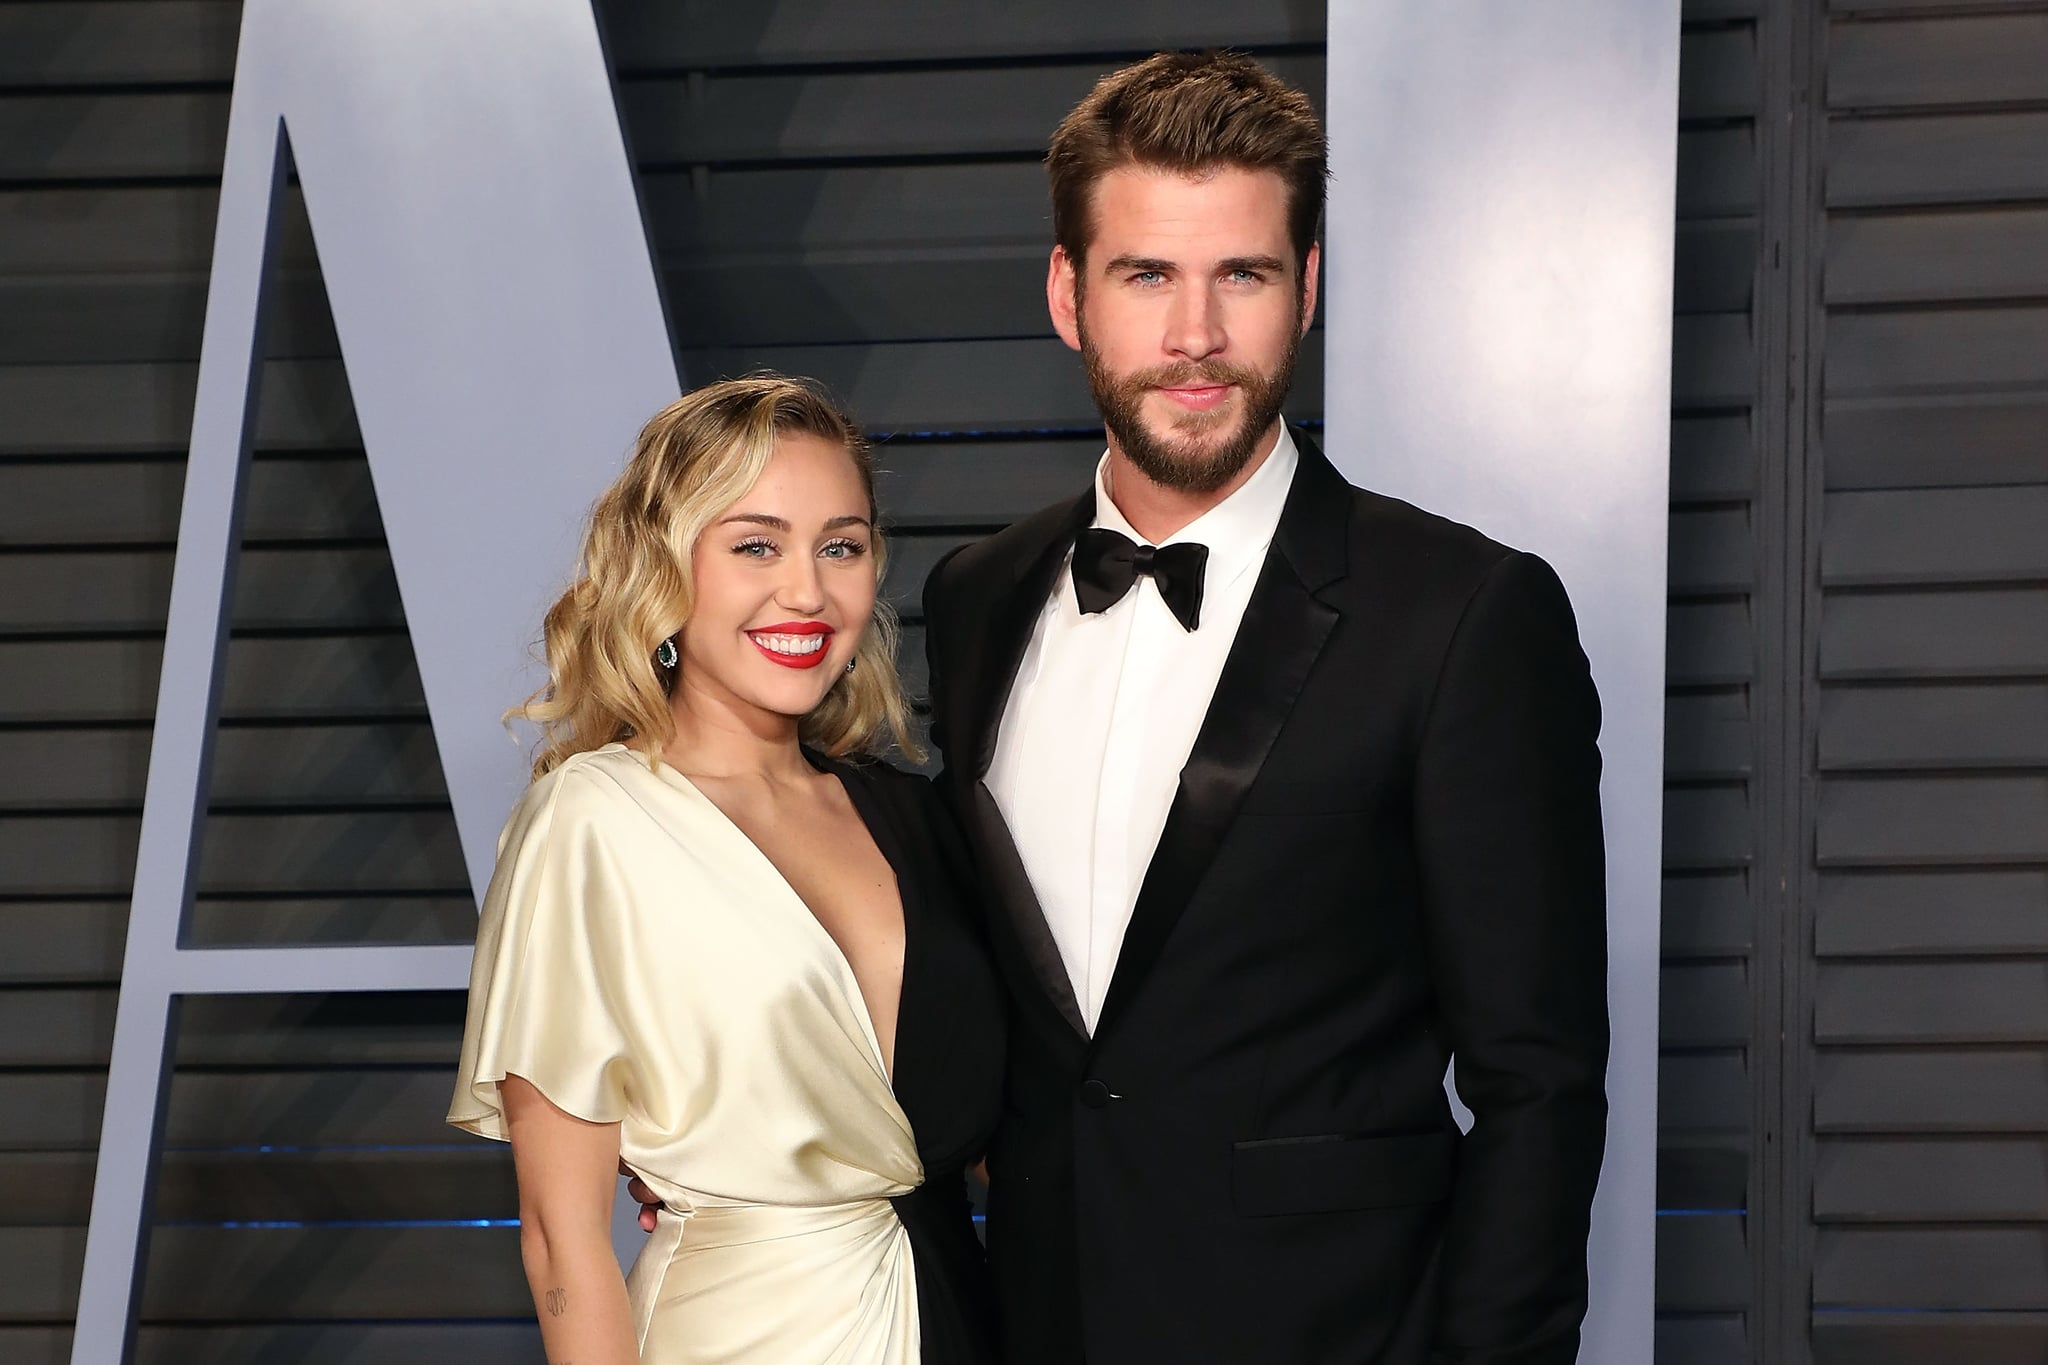 BEVERLY HILLS, CA - MARCH 04:  Miley Cyrus and Liam Hemsworth attend the 2018 Vanity Fair Oscar Party hosted by Radhika Jones at the Wallis Annenberg Center for the Performing Arts on March 4, 2018 in Beverly Hills, California.  (Photo by Taylor Hill/FilmMagic)